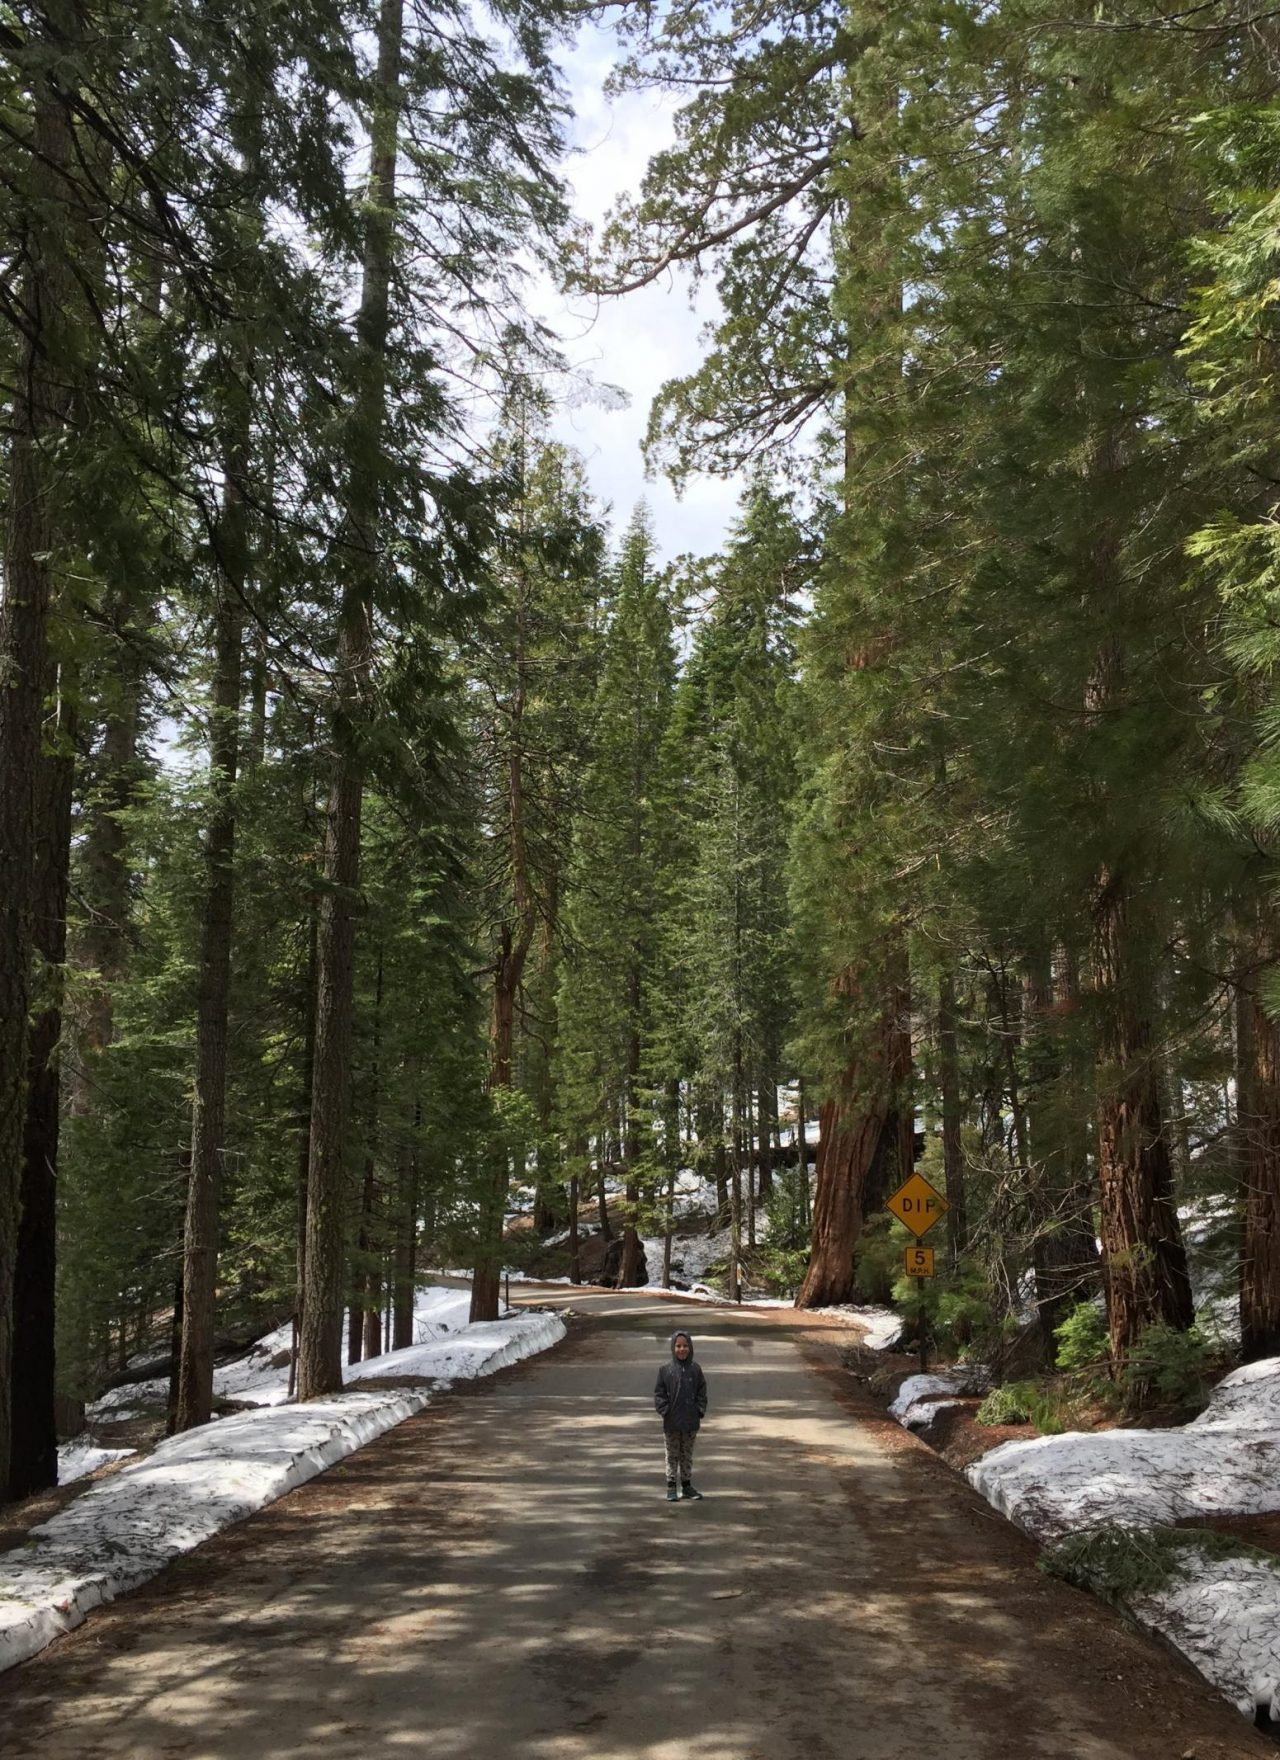 Hiking to Mariposa Grove of Giant Sequoias, with kids, in the snow